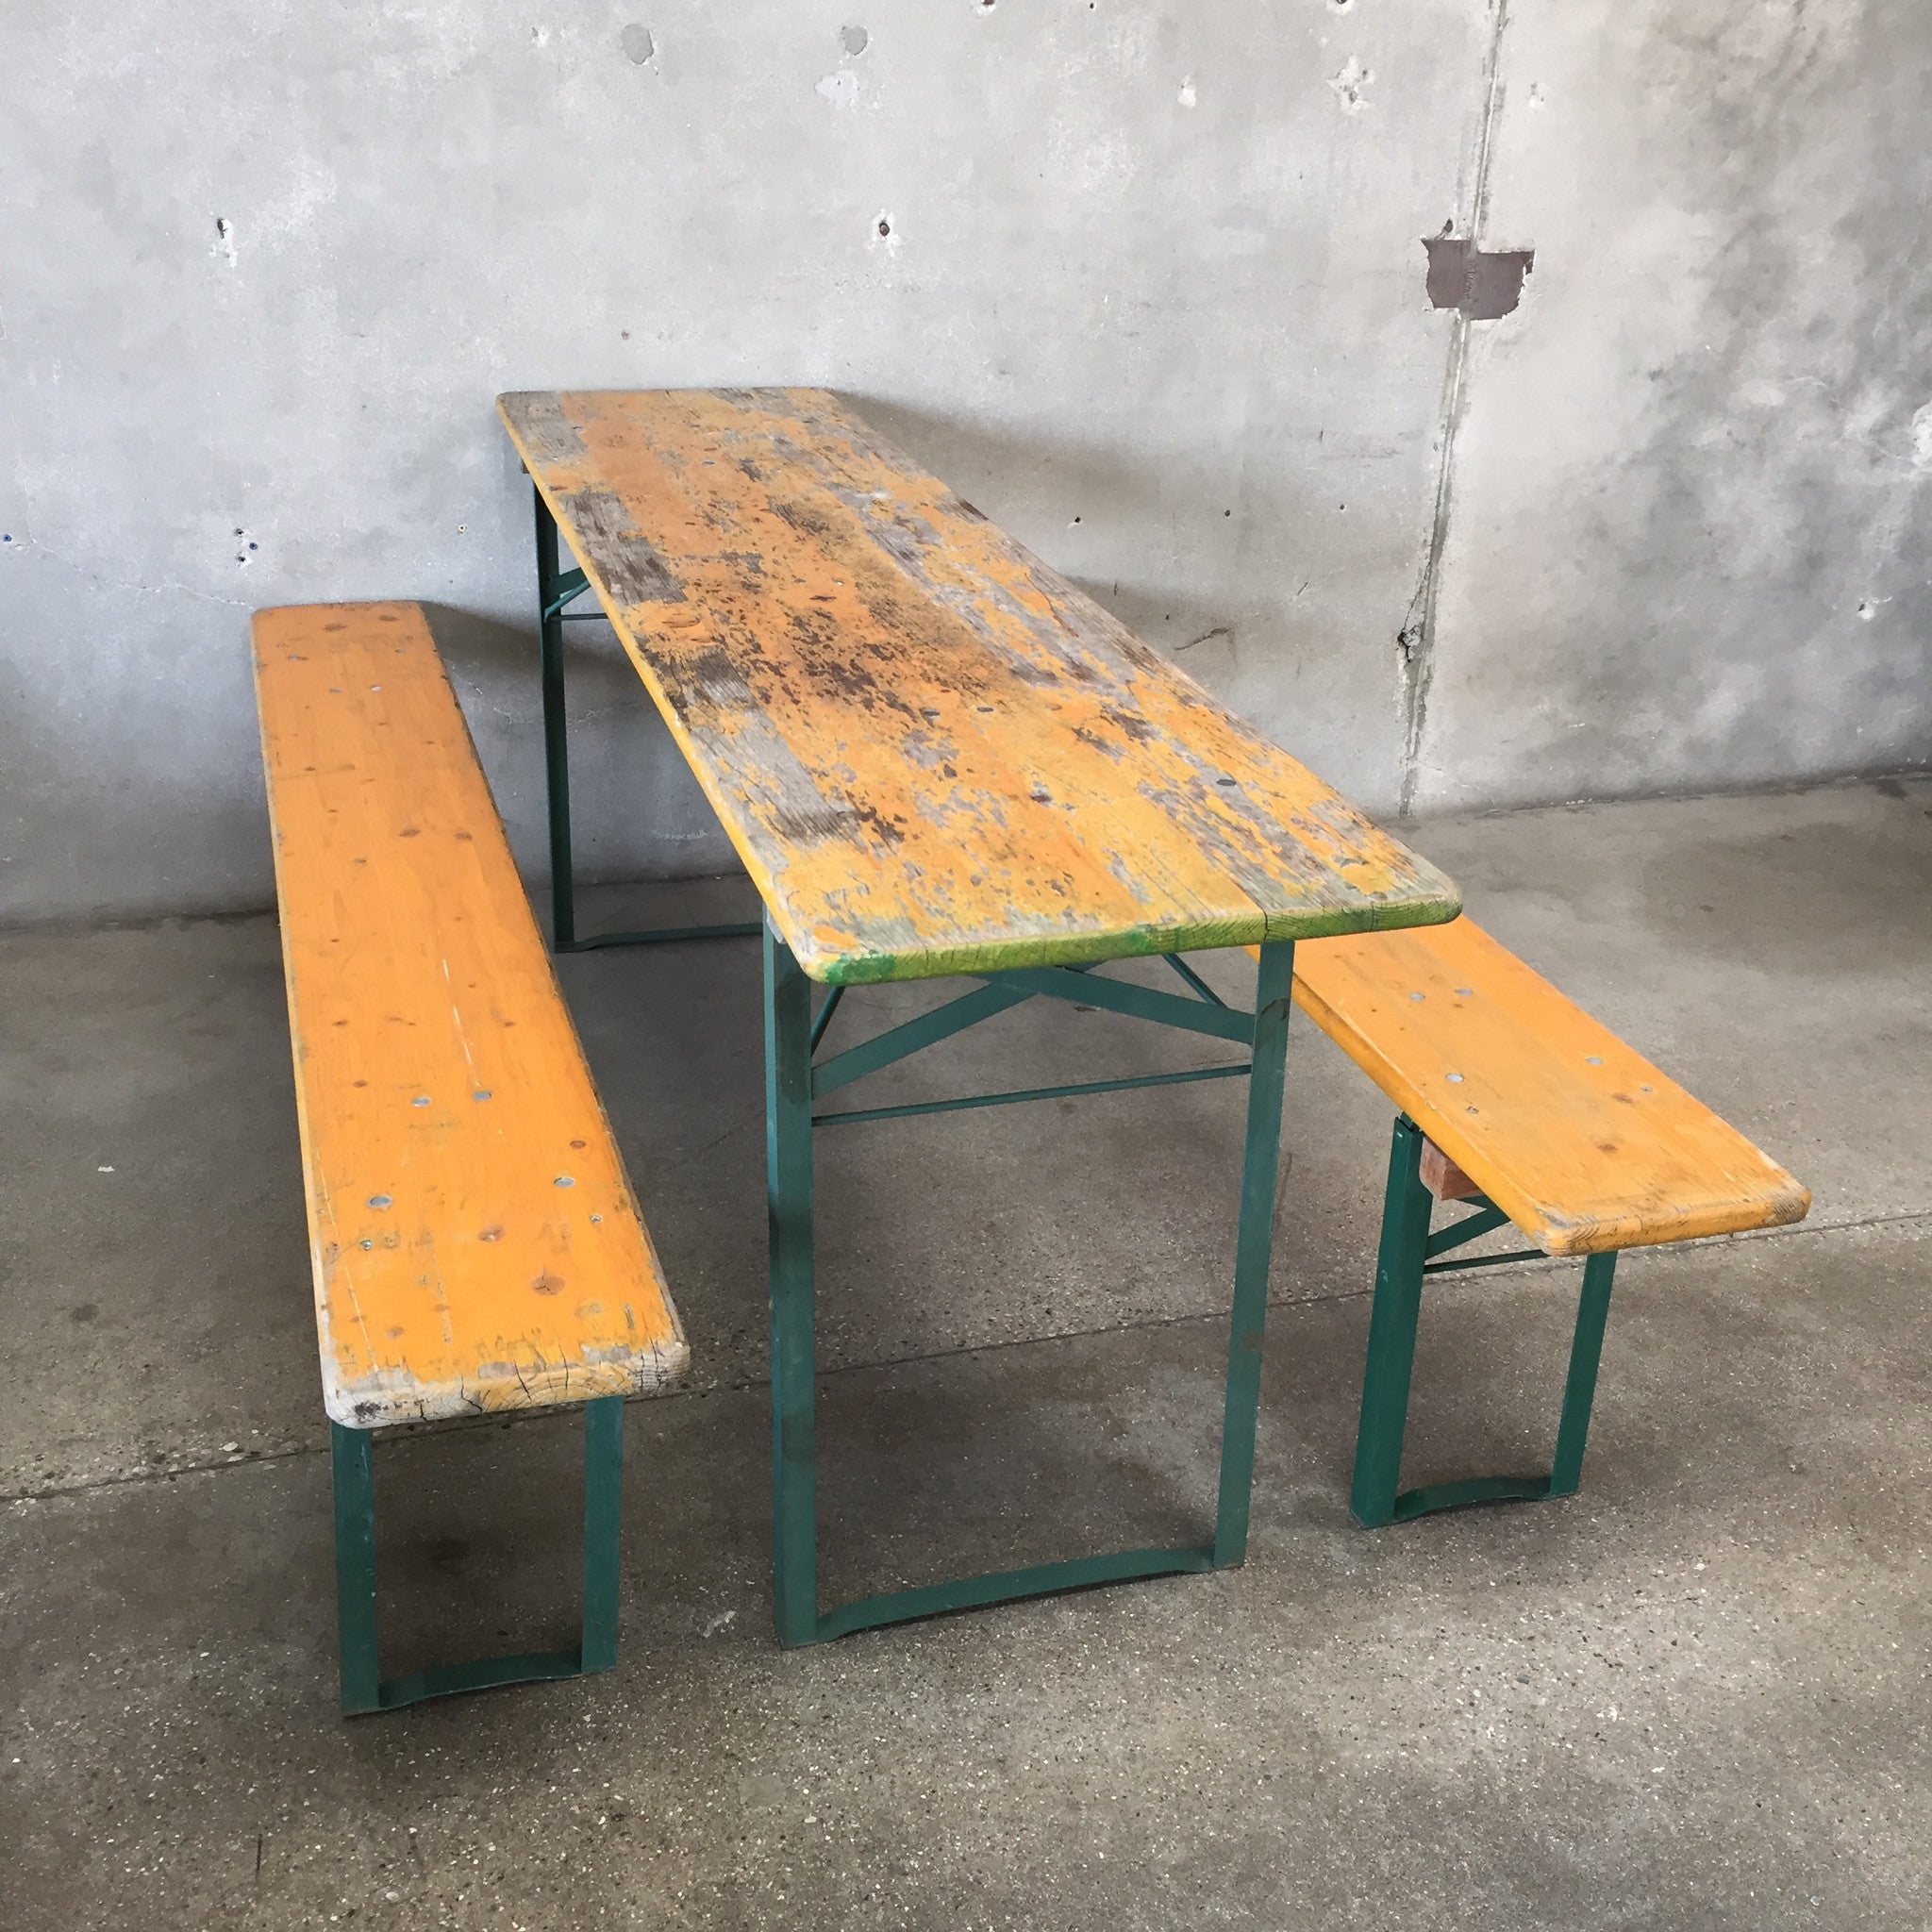 Vintage German Beer Garden Tables and Two Benches. Vintage German Beer Garden Tables and Two Benches   UrbanAmericana